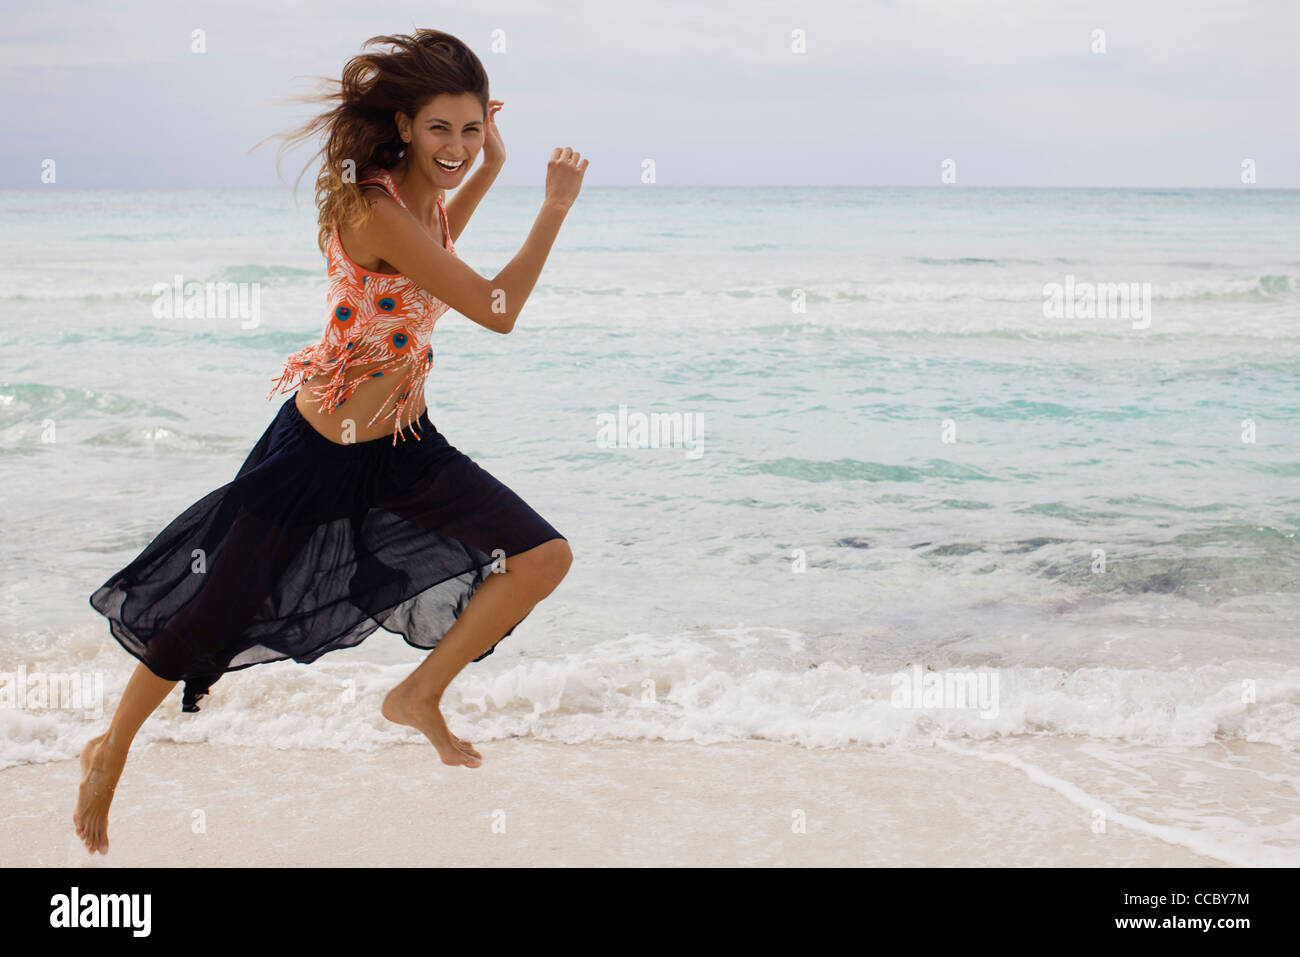 Woman running at the beach - Stock Image